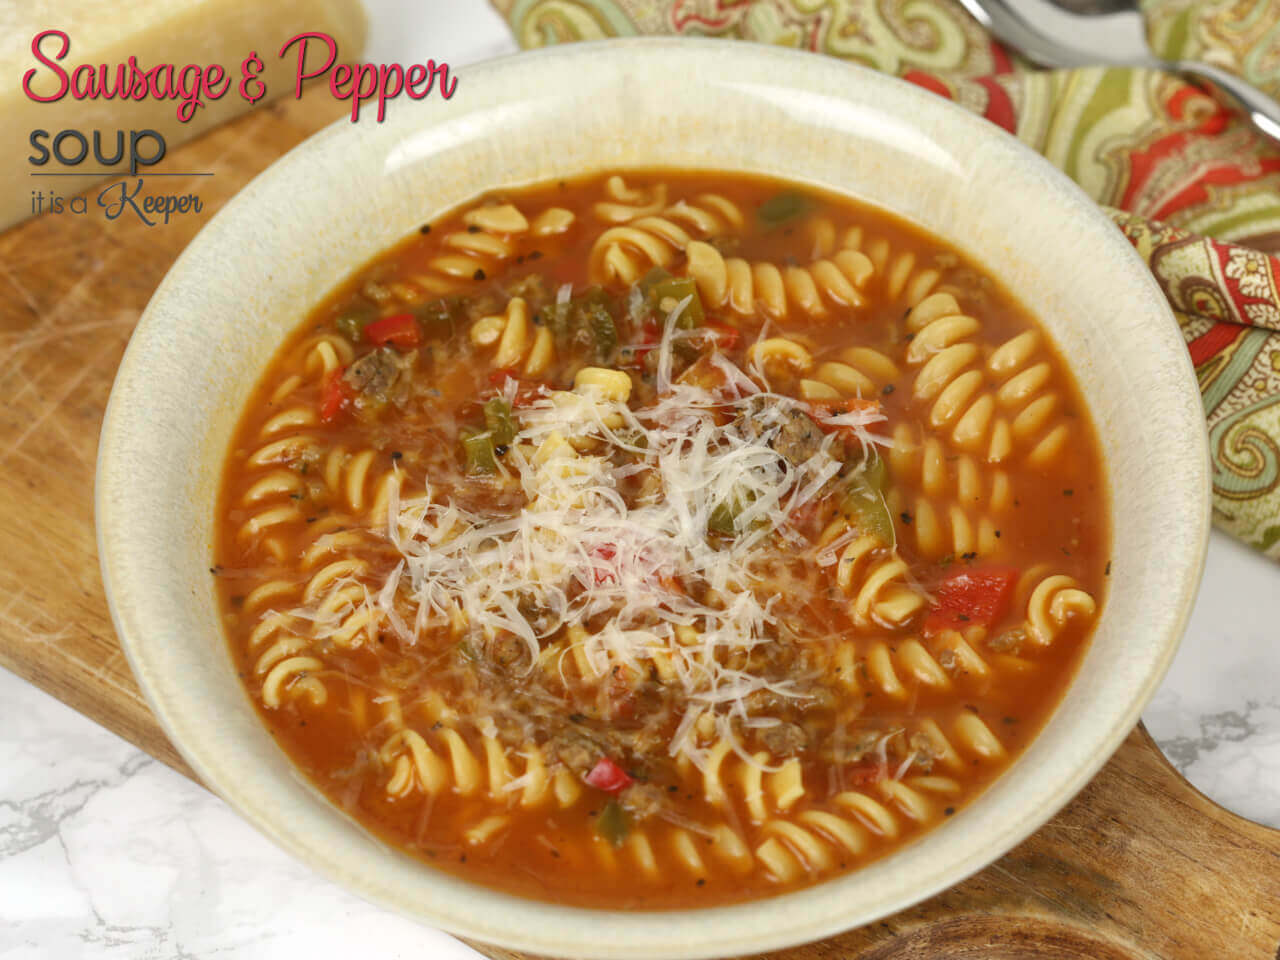 Sausage and Pepper Soup - the easy soup recipe is ready in under 30 minutes